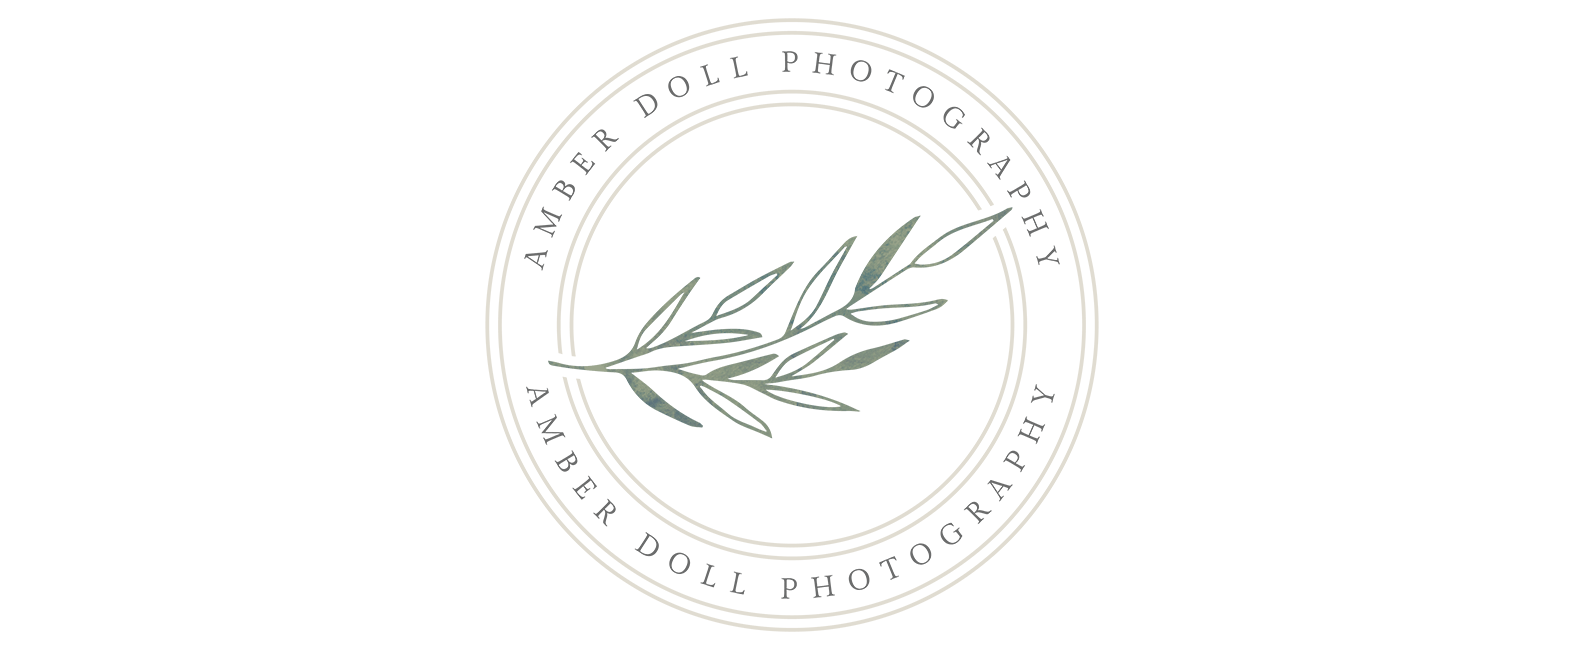 Amber Doll Photography Alternate Logo Footer.png